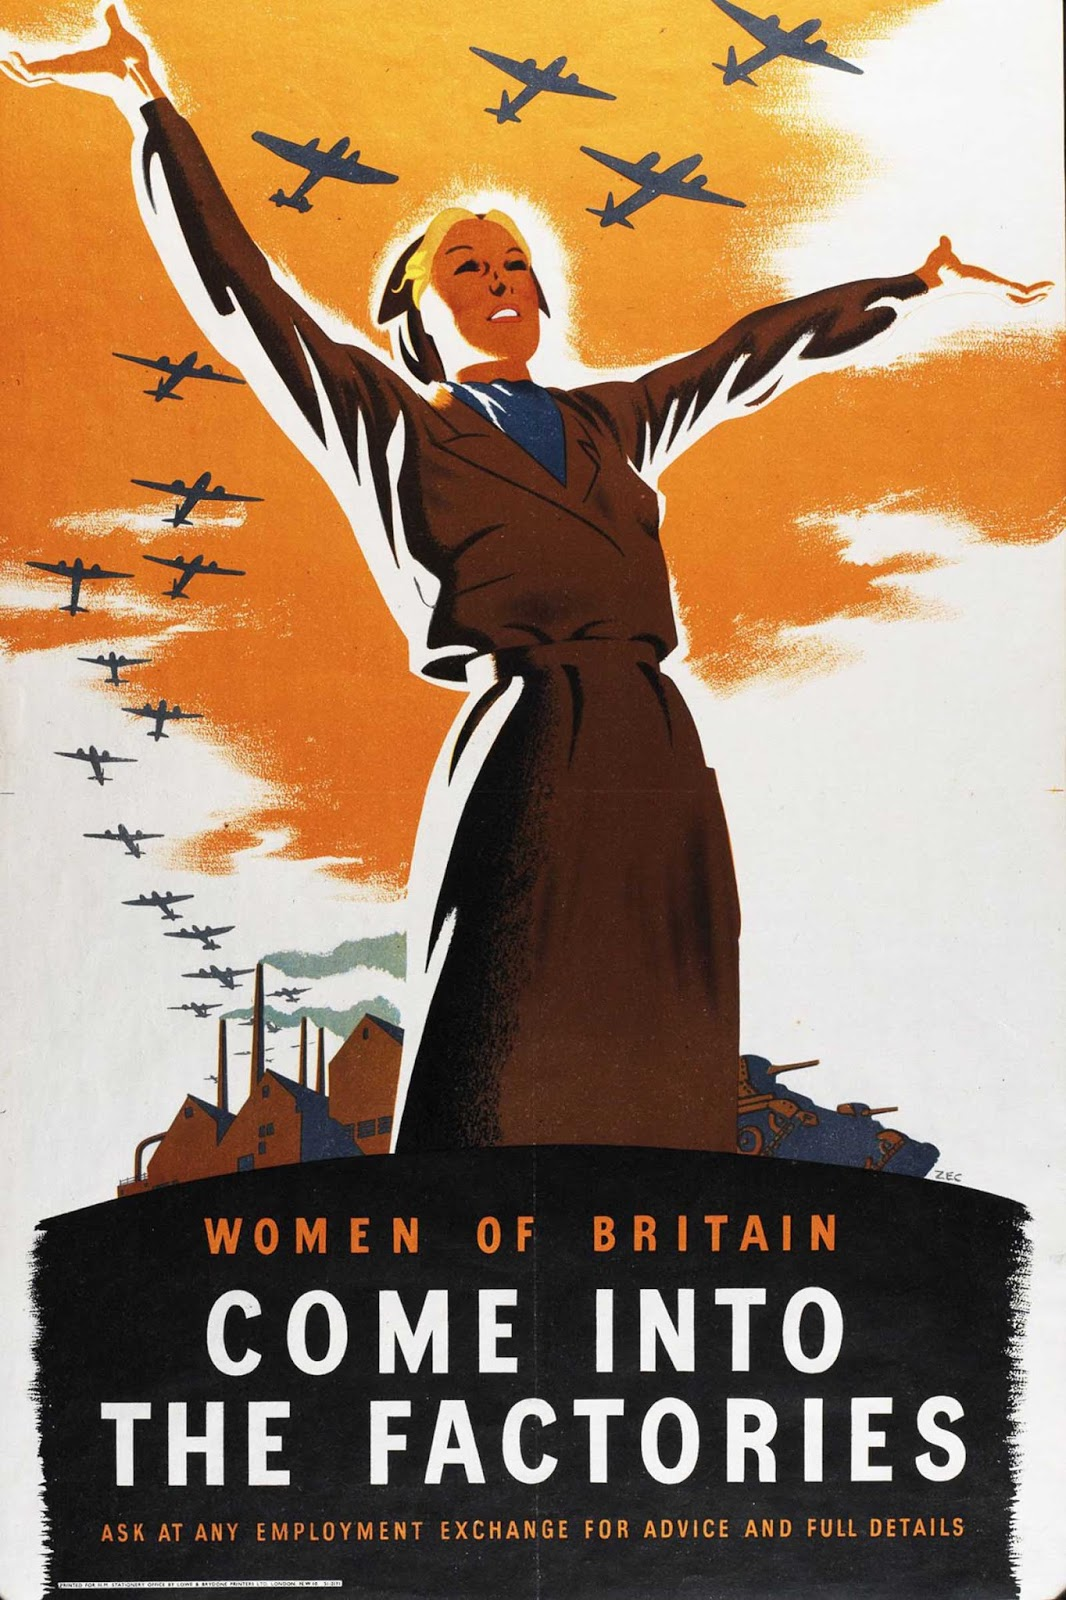 A British propaganda poster urges women to take up manufacturing jobs to help the war effort. 1941.